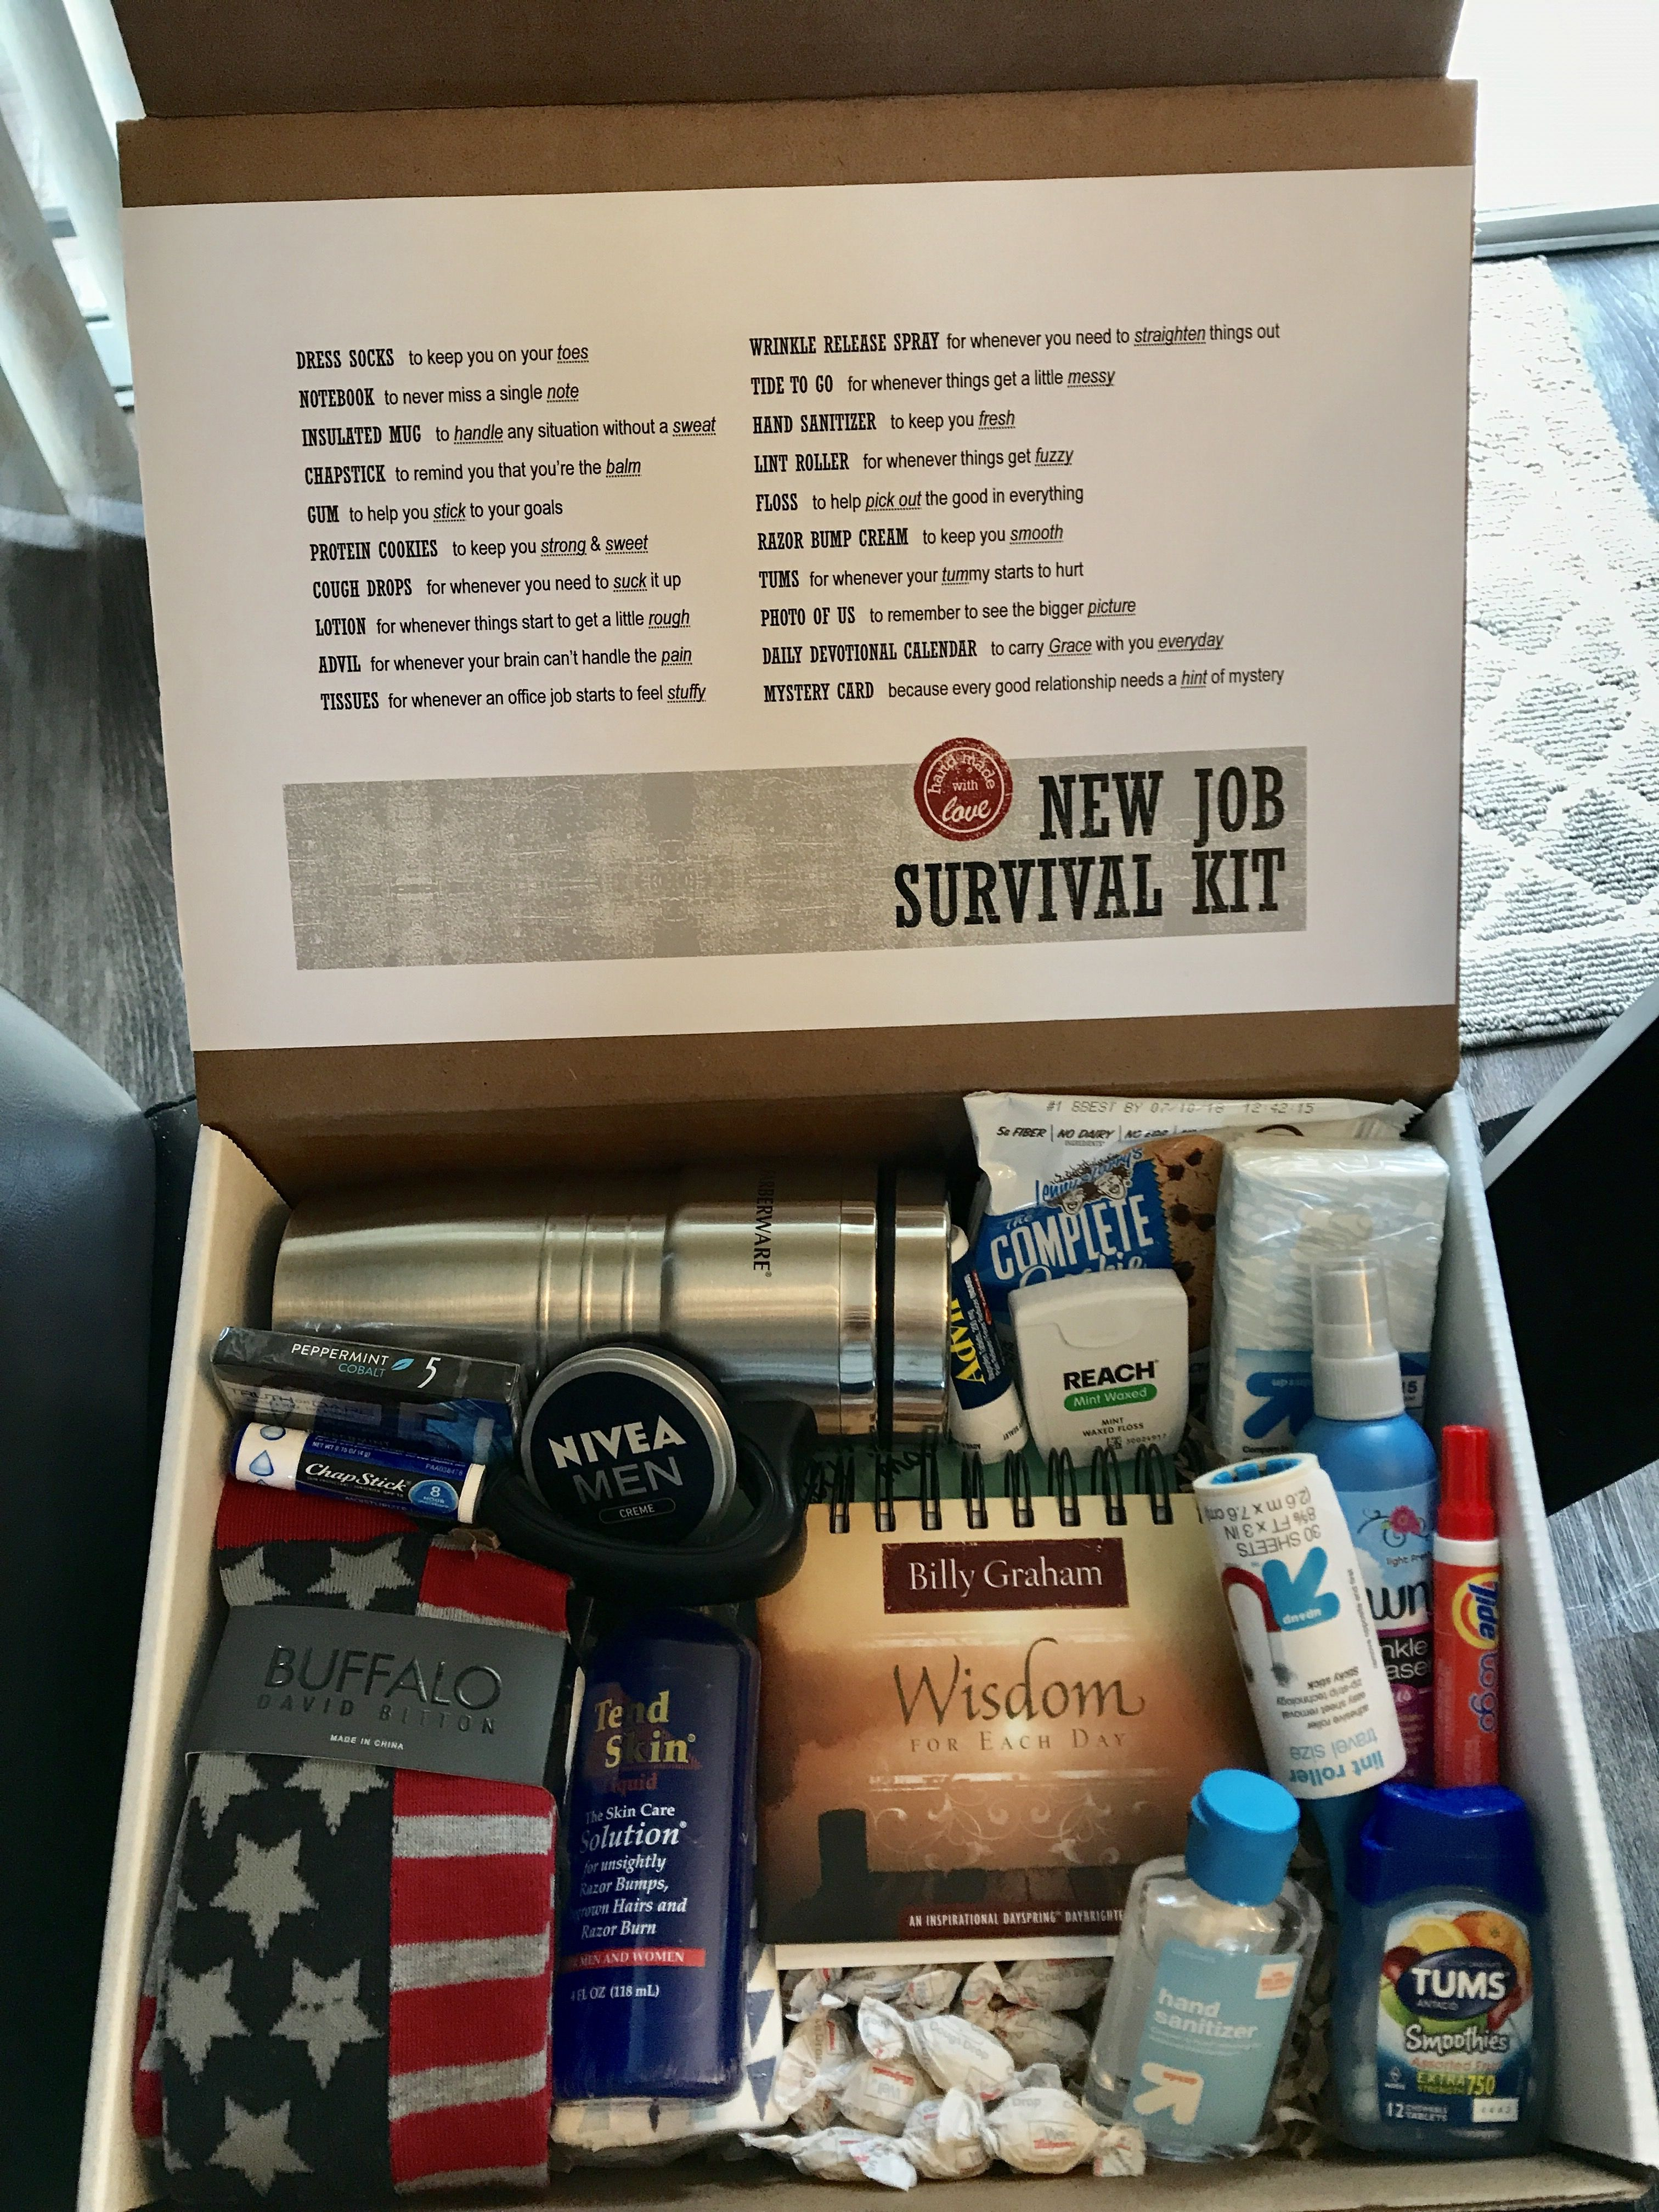 Diy New Job Survival Kit For Boyfriend With Images New